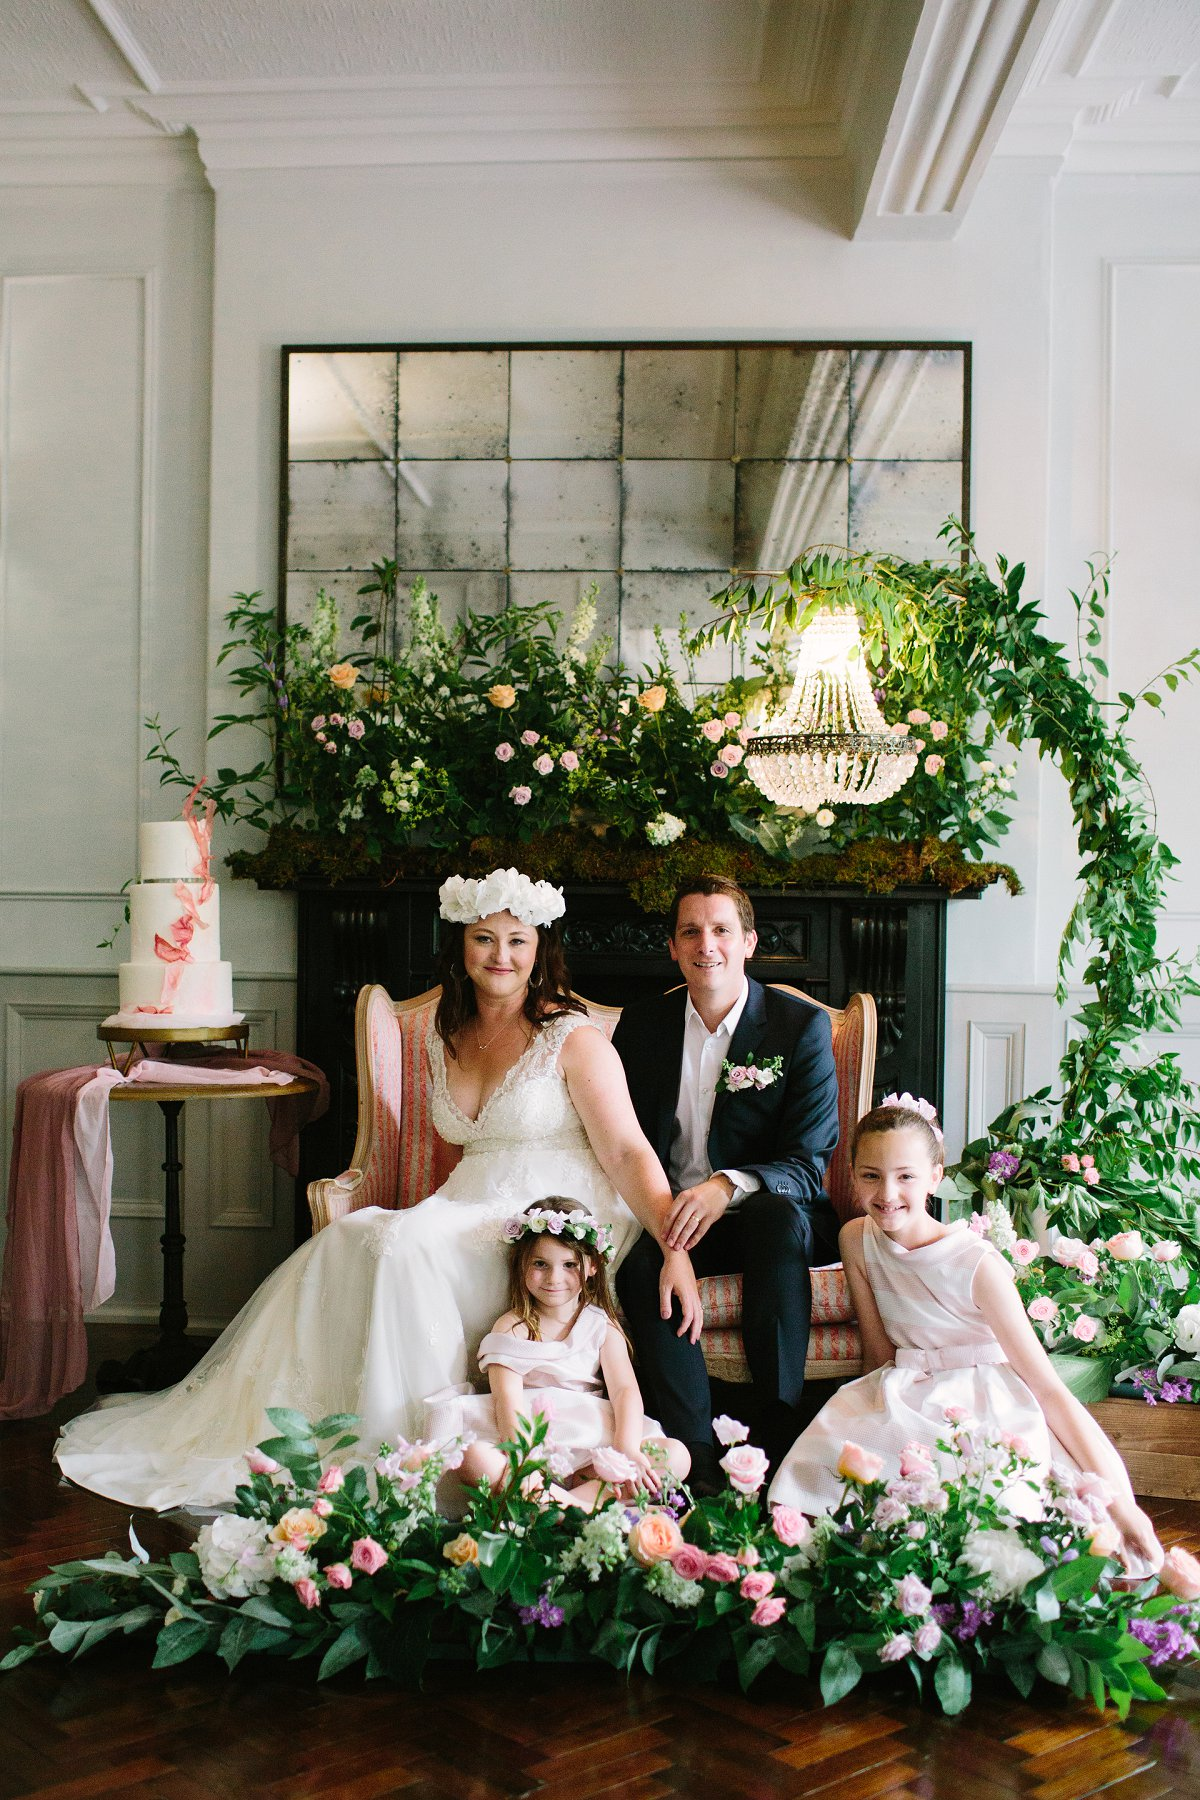 Family Affair A Styled Wedding Shoot At The Beaumont Hotel Brides Up North